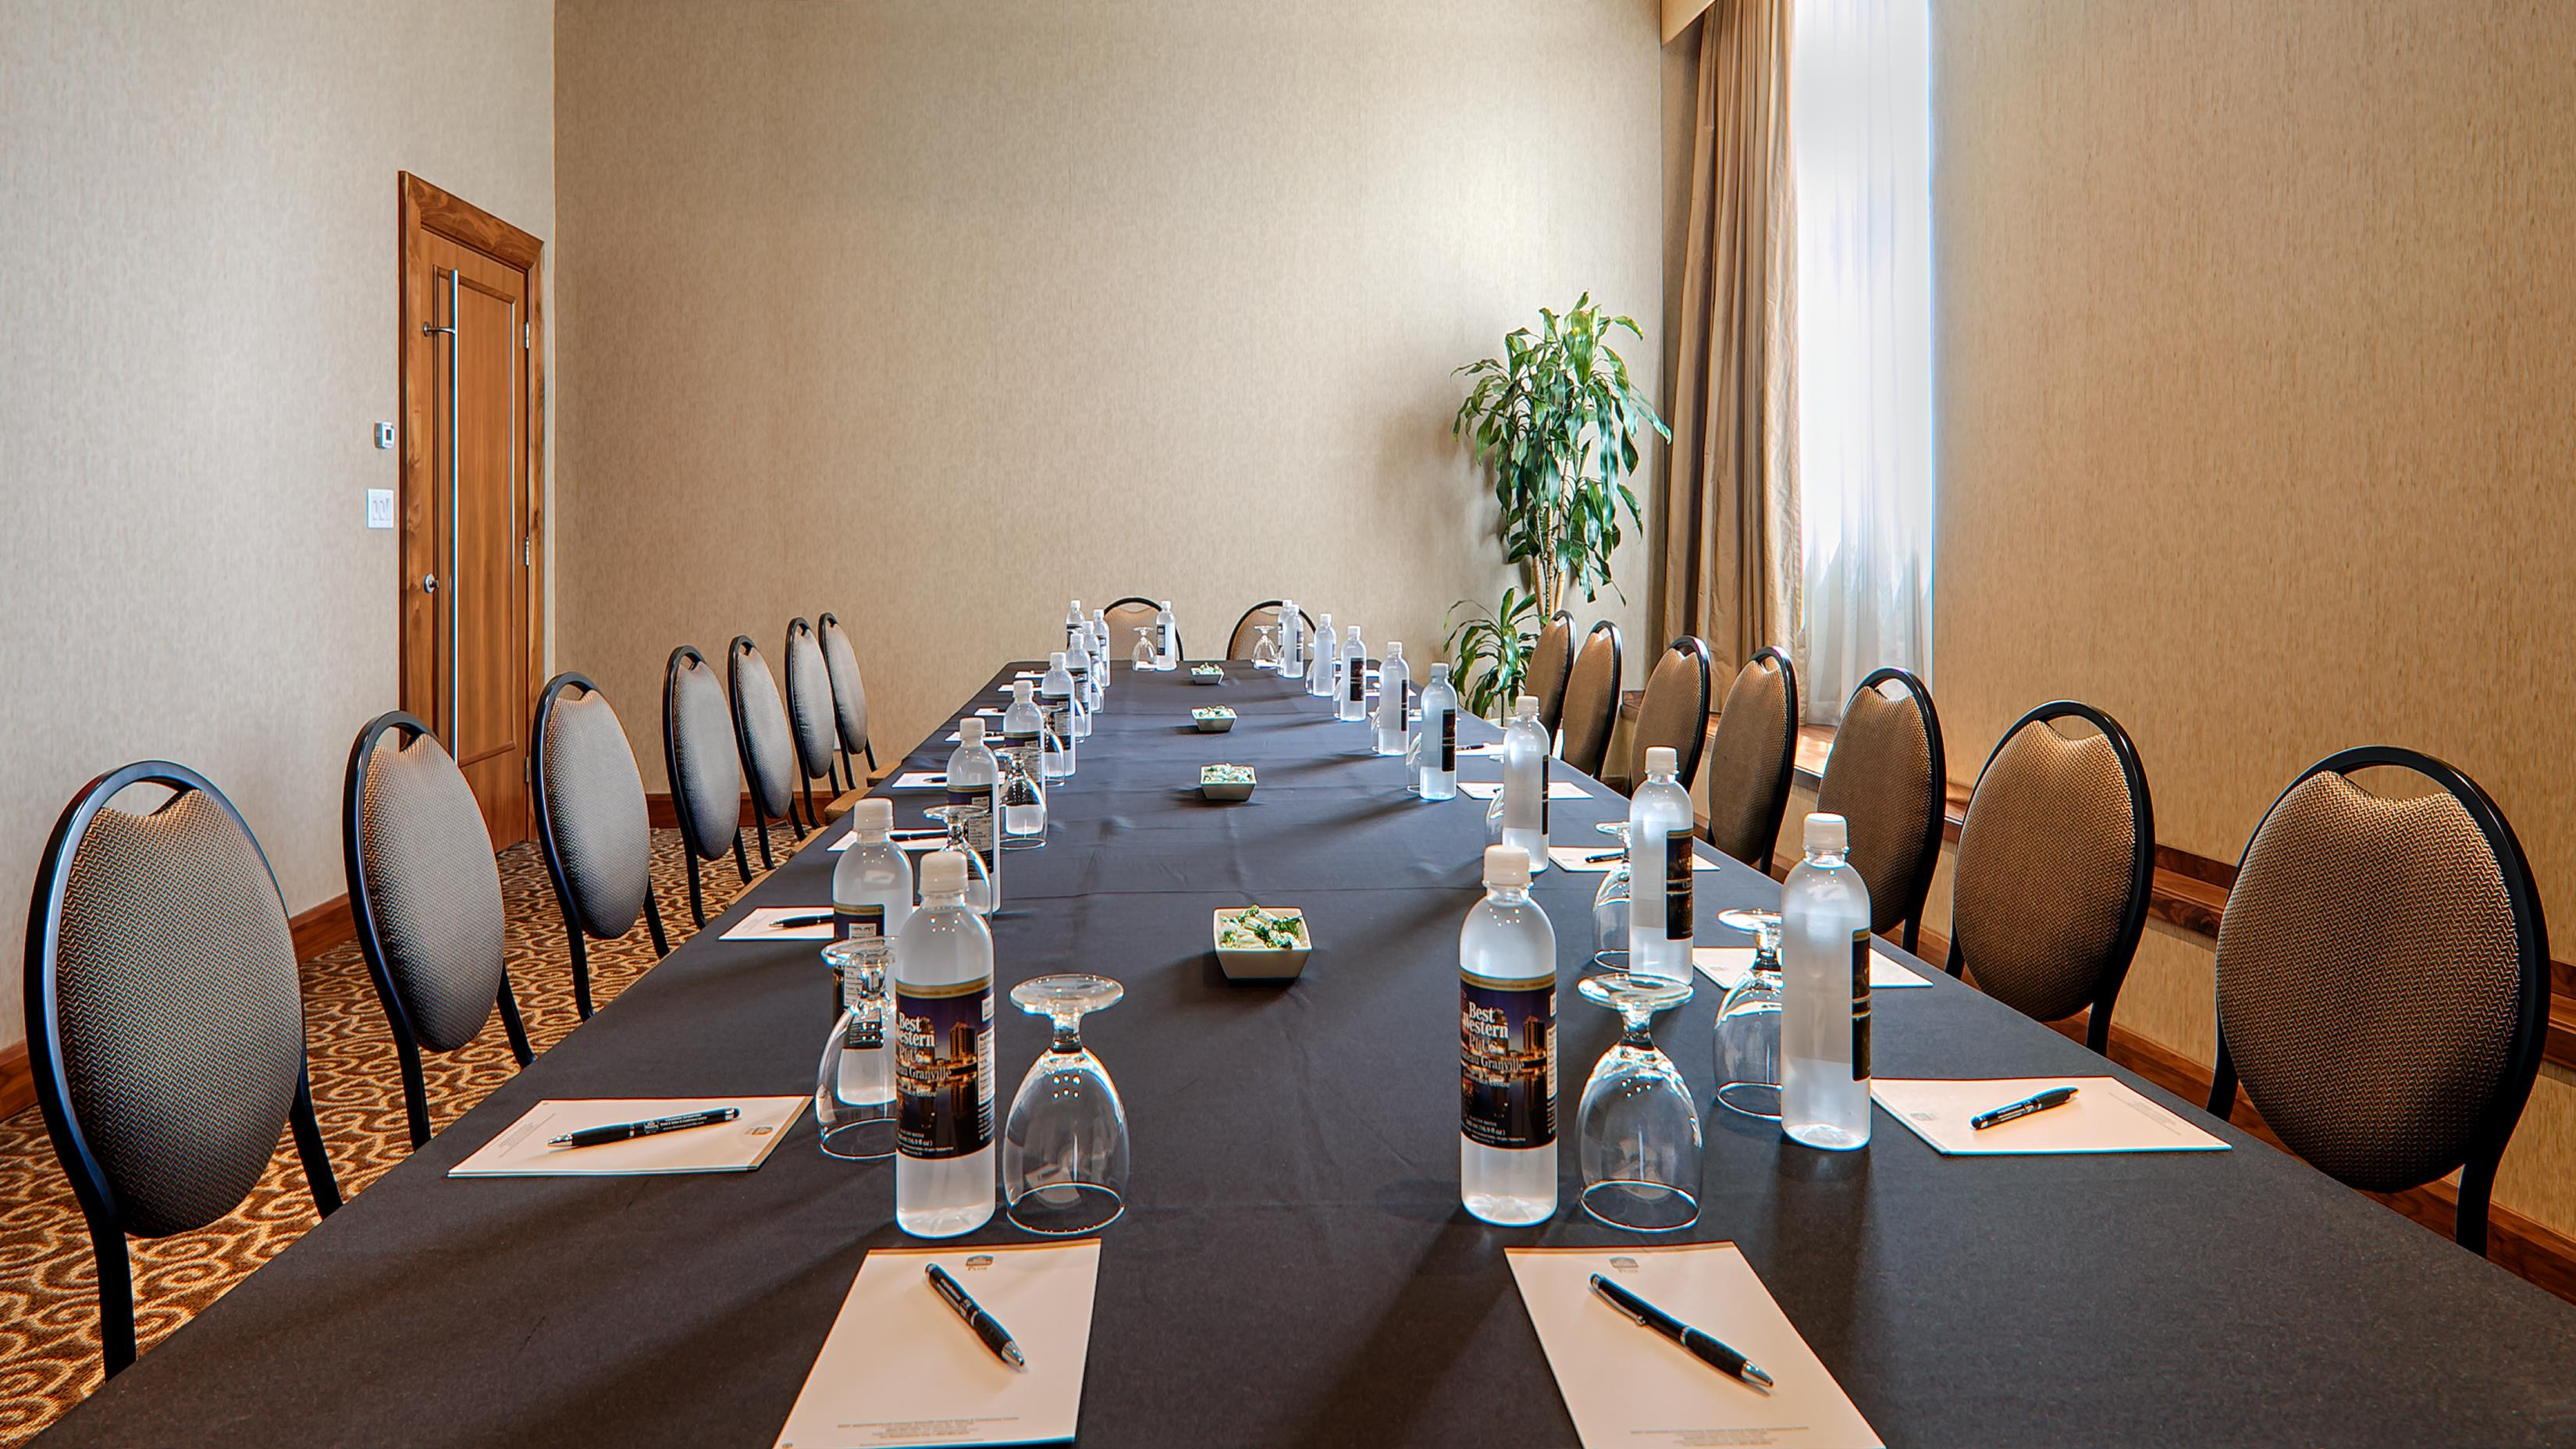 Best Western Plus Chateau Granville Hotel & Suites & Conference Ctr. in Vancouver: Meeting Room